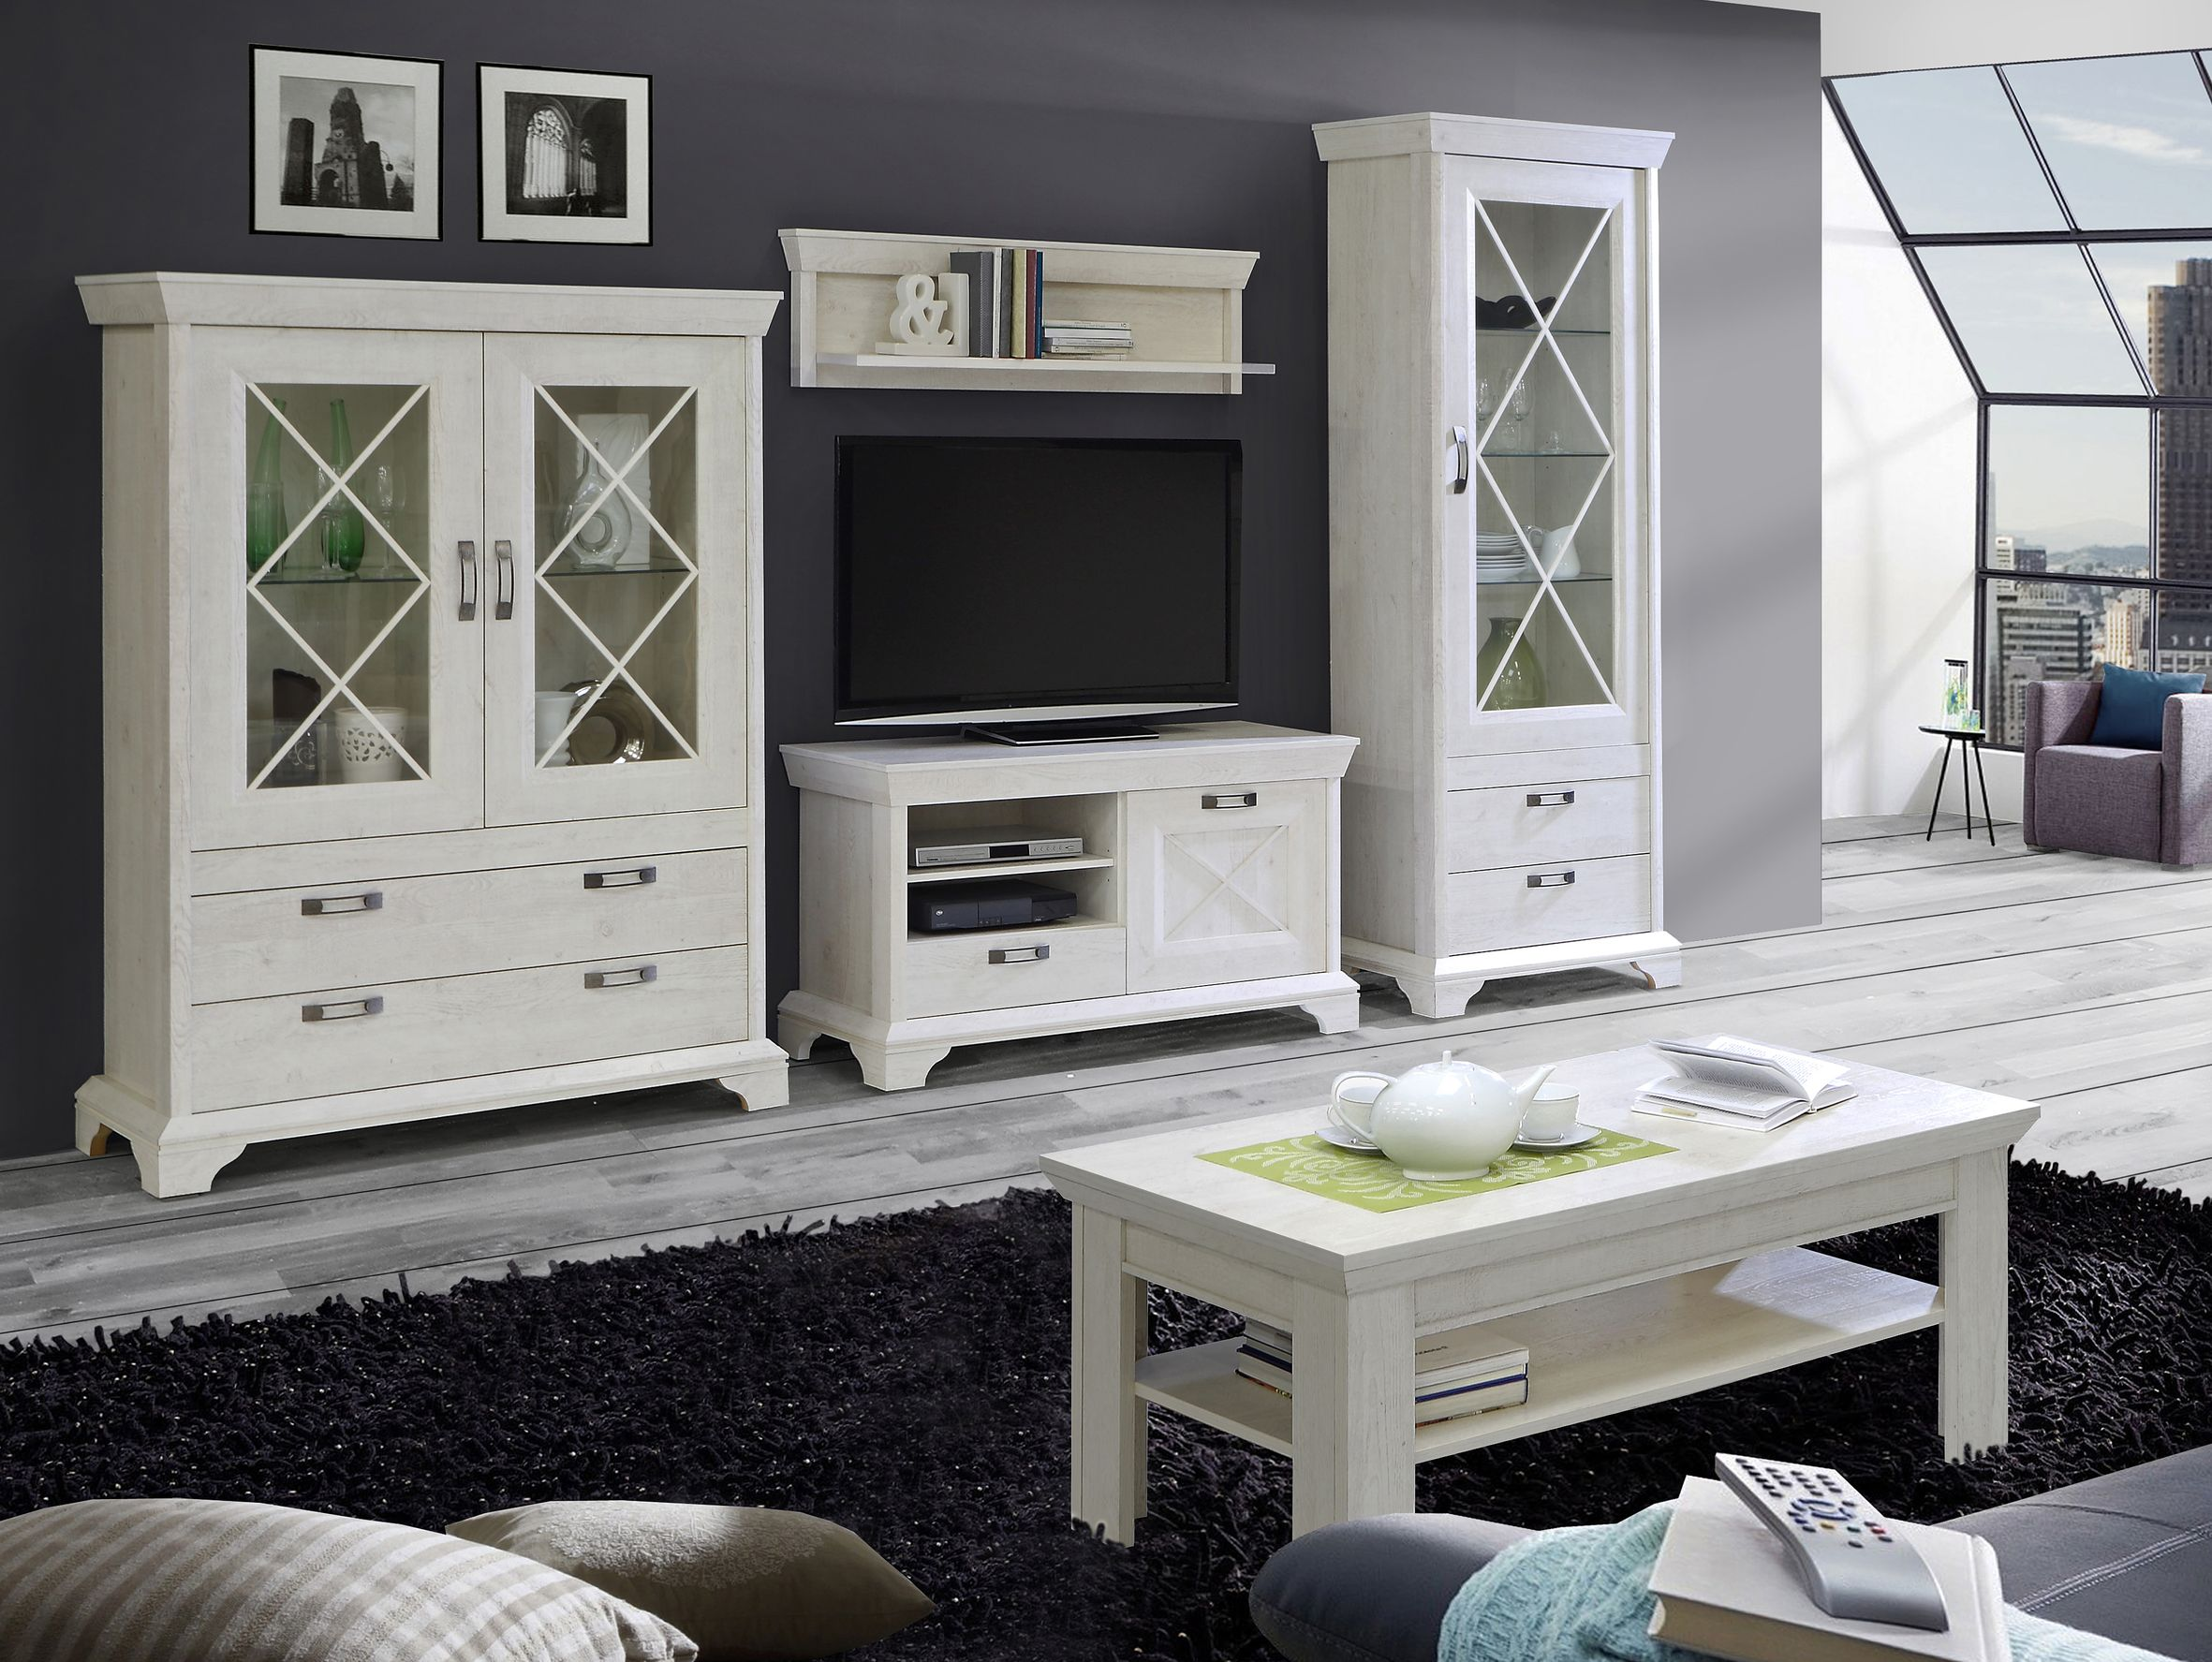 wohnzimmer vitrine kashmir. Black Bedroom Furniture Sets. Home Design Ideas